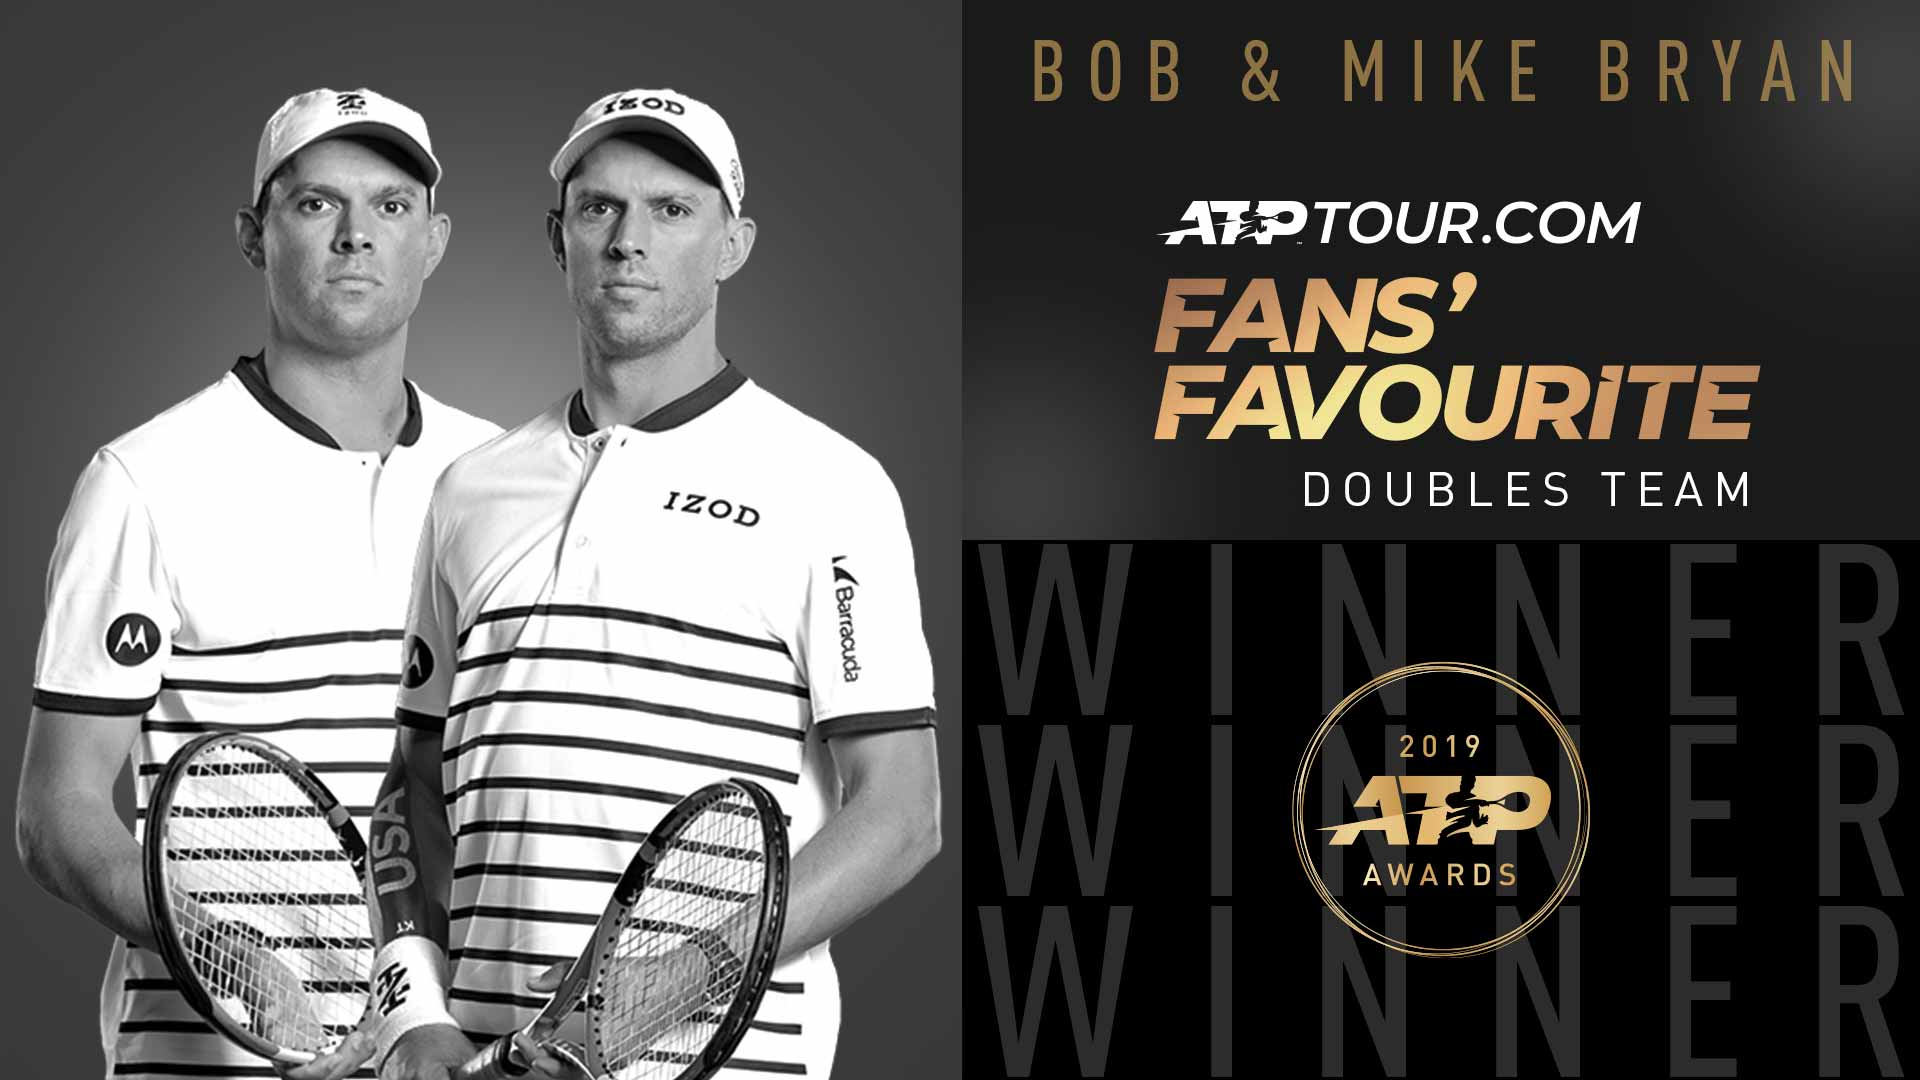 Bob and Mike Bryan claim the ATPTour.com Fan's Favourite Award in the doubles category for a record 14th time.